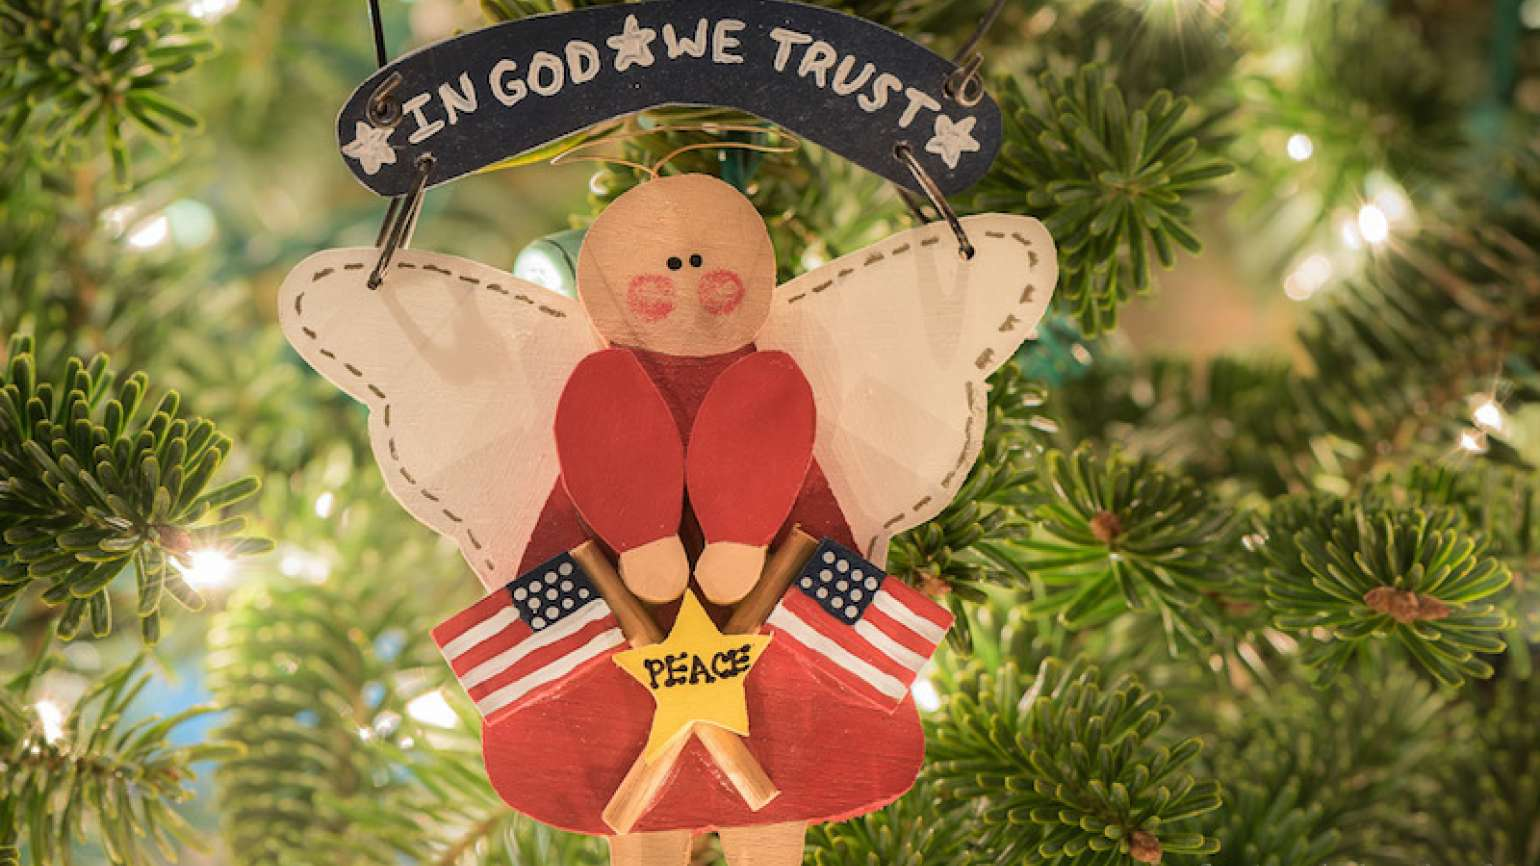 A replica of the ornament that went to Washington! Photo by Judy Royal Glenn.